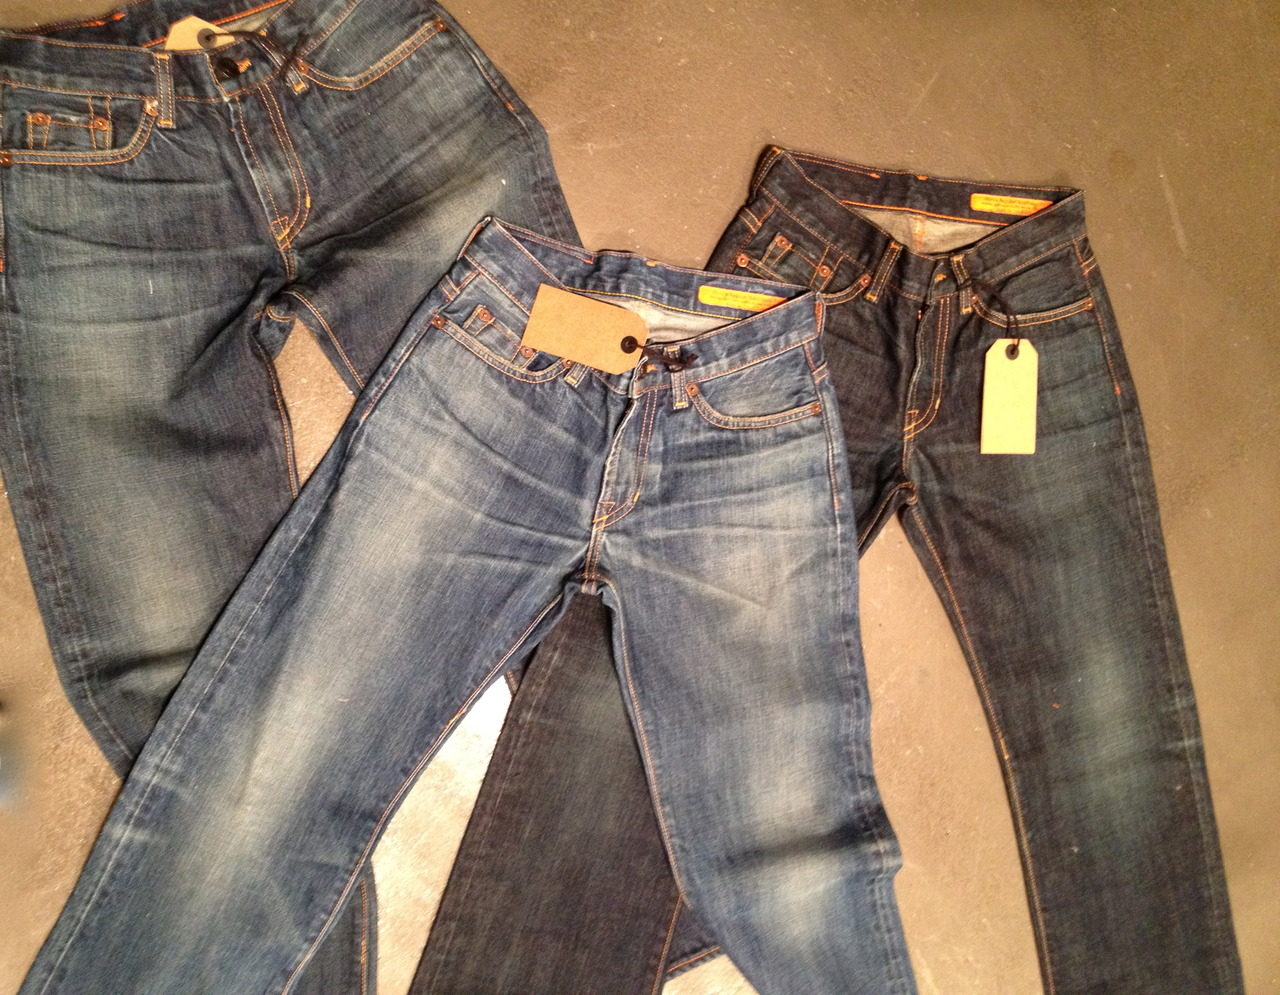 This is new wash development for our Fall/Winter season.  These are simply the best vintage washes that I have ever seen. I often post shots of Jean Shop vintage jeans that we take back on trade but these are new jeans.  They will be in the shop during the fall.